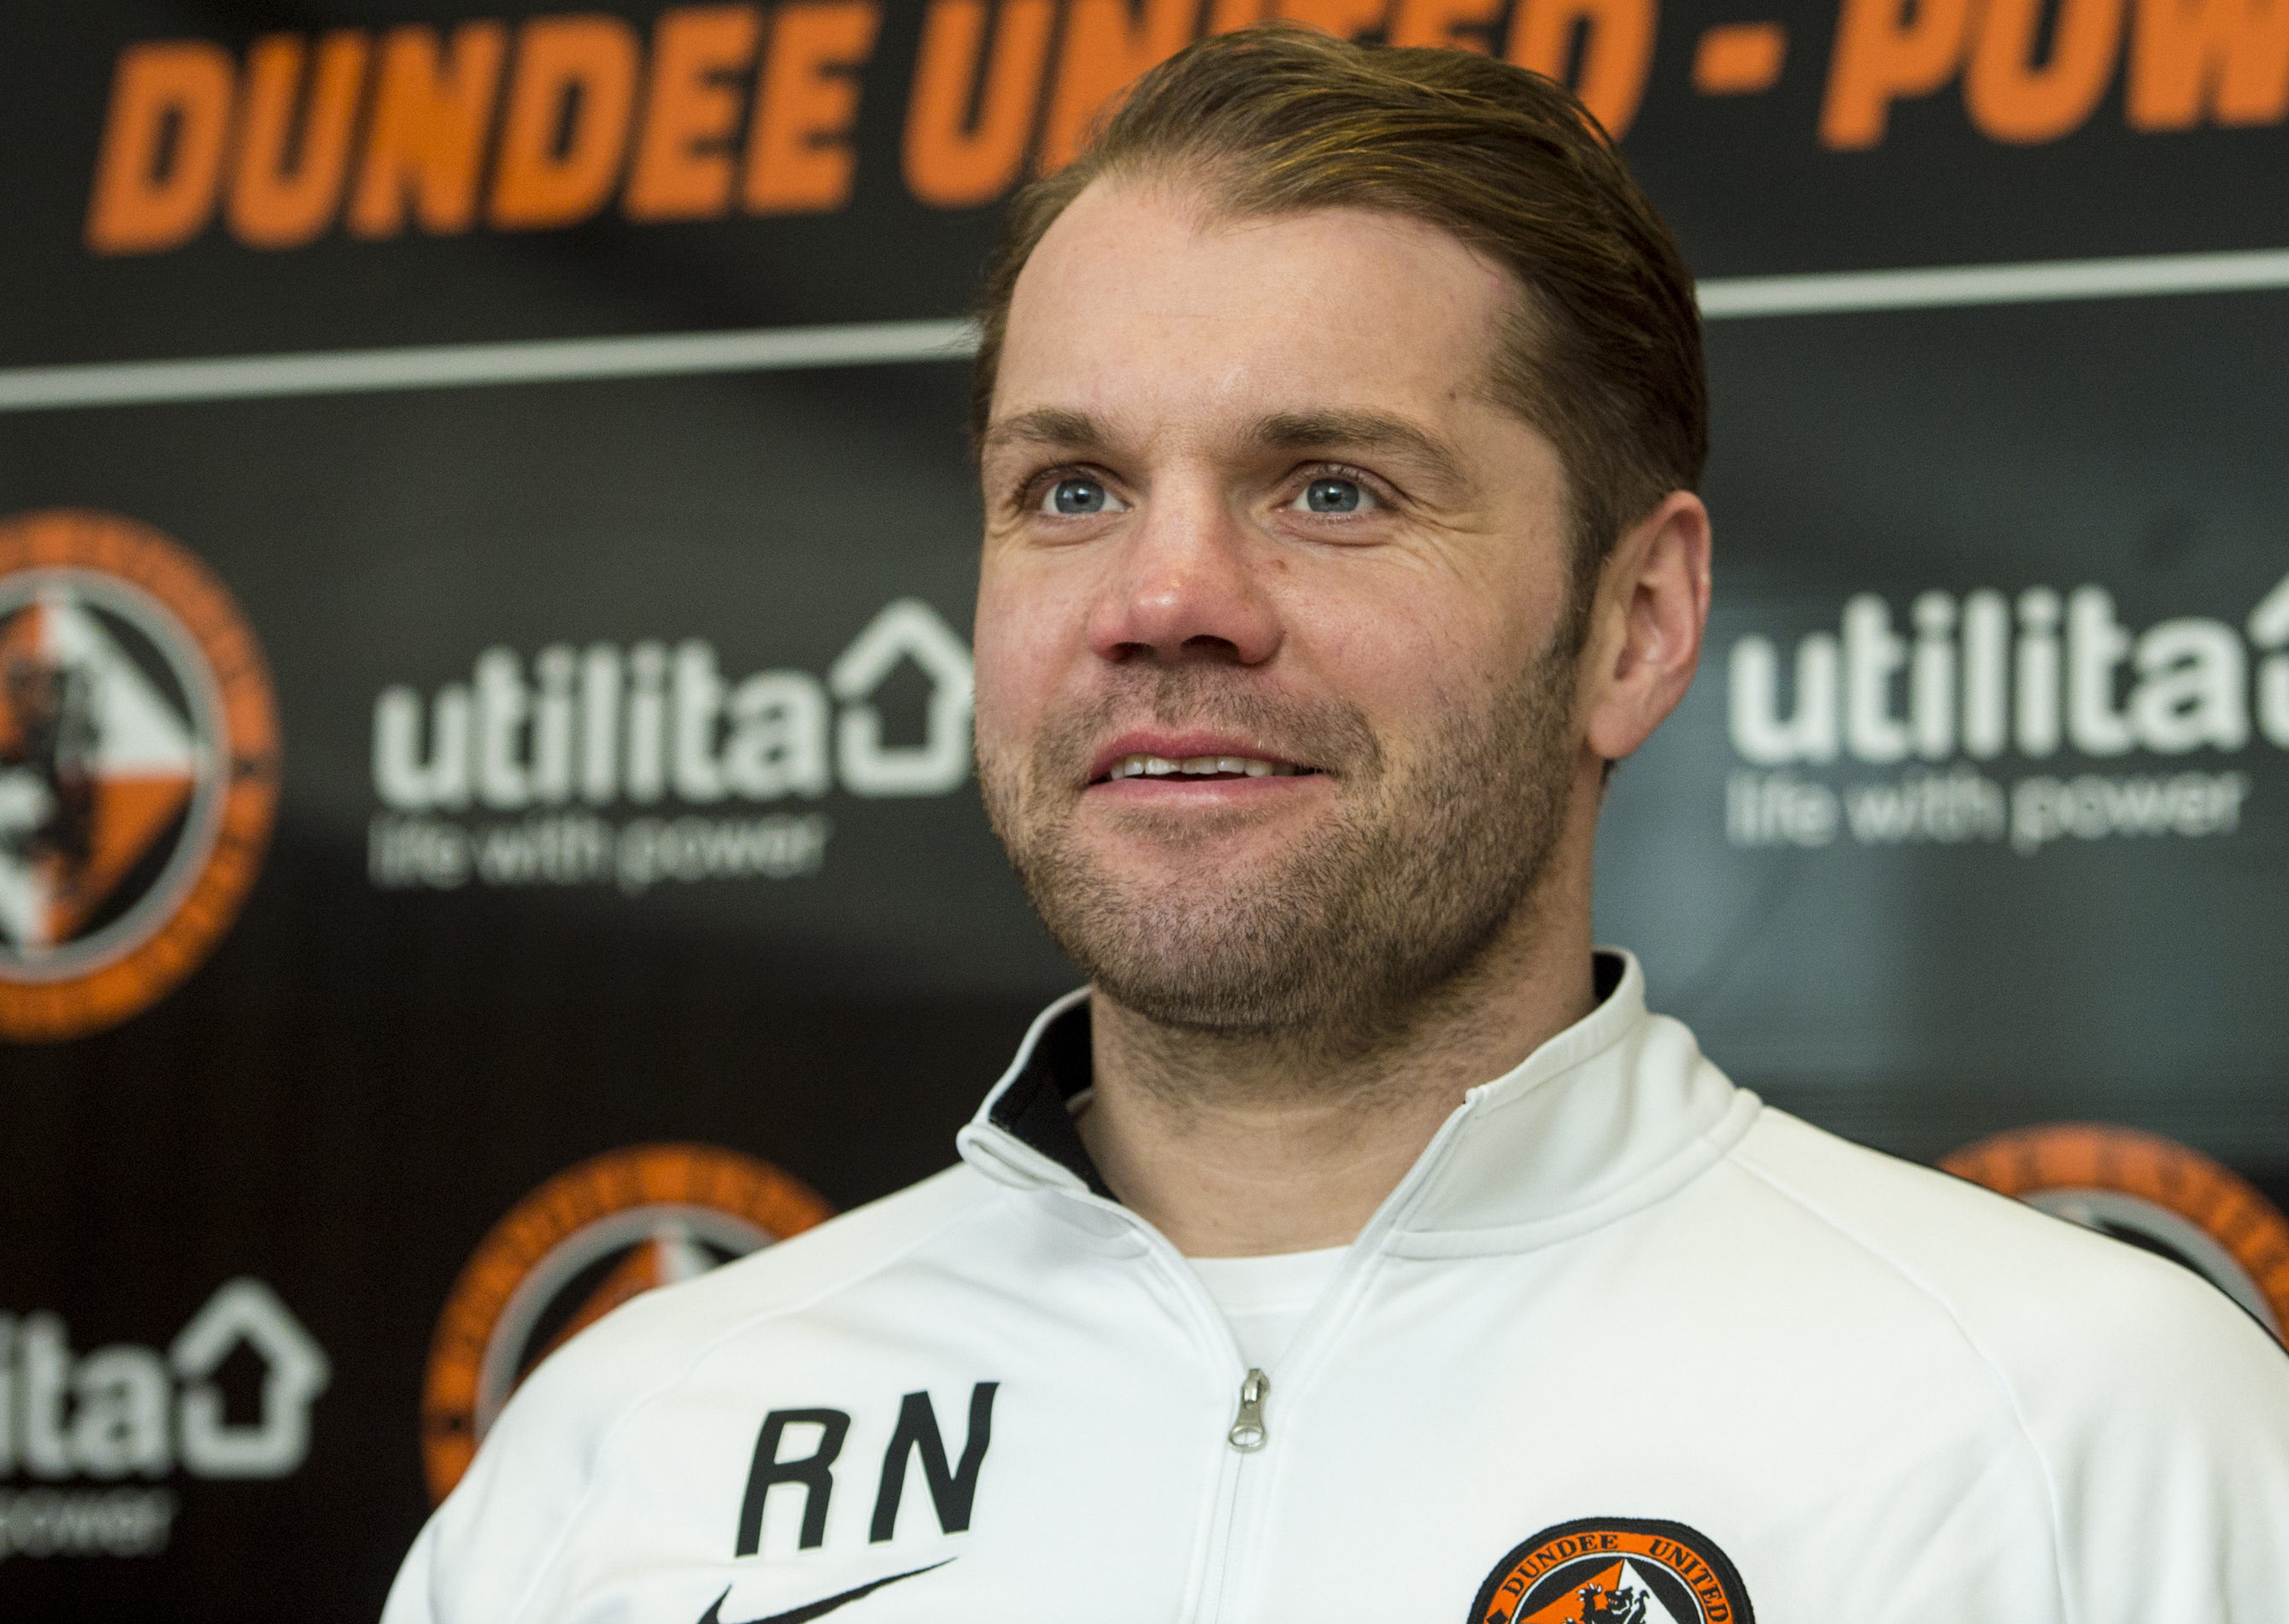 Robbie Neilson chats to the media at St Andrews.